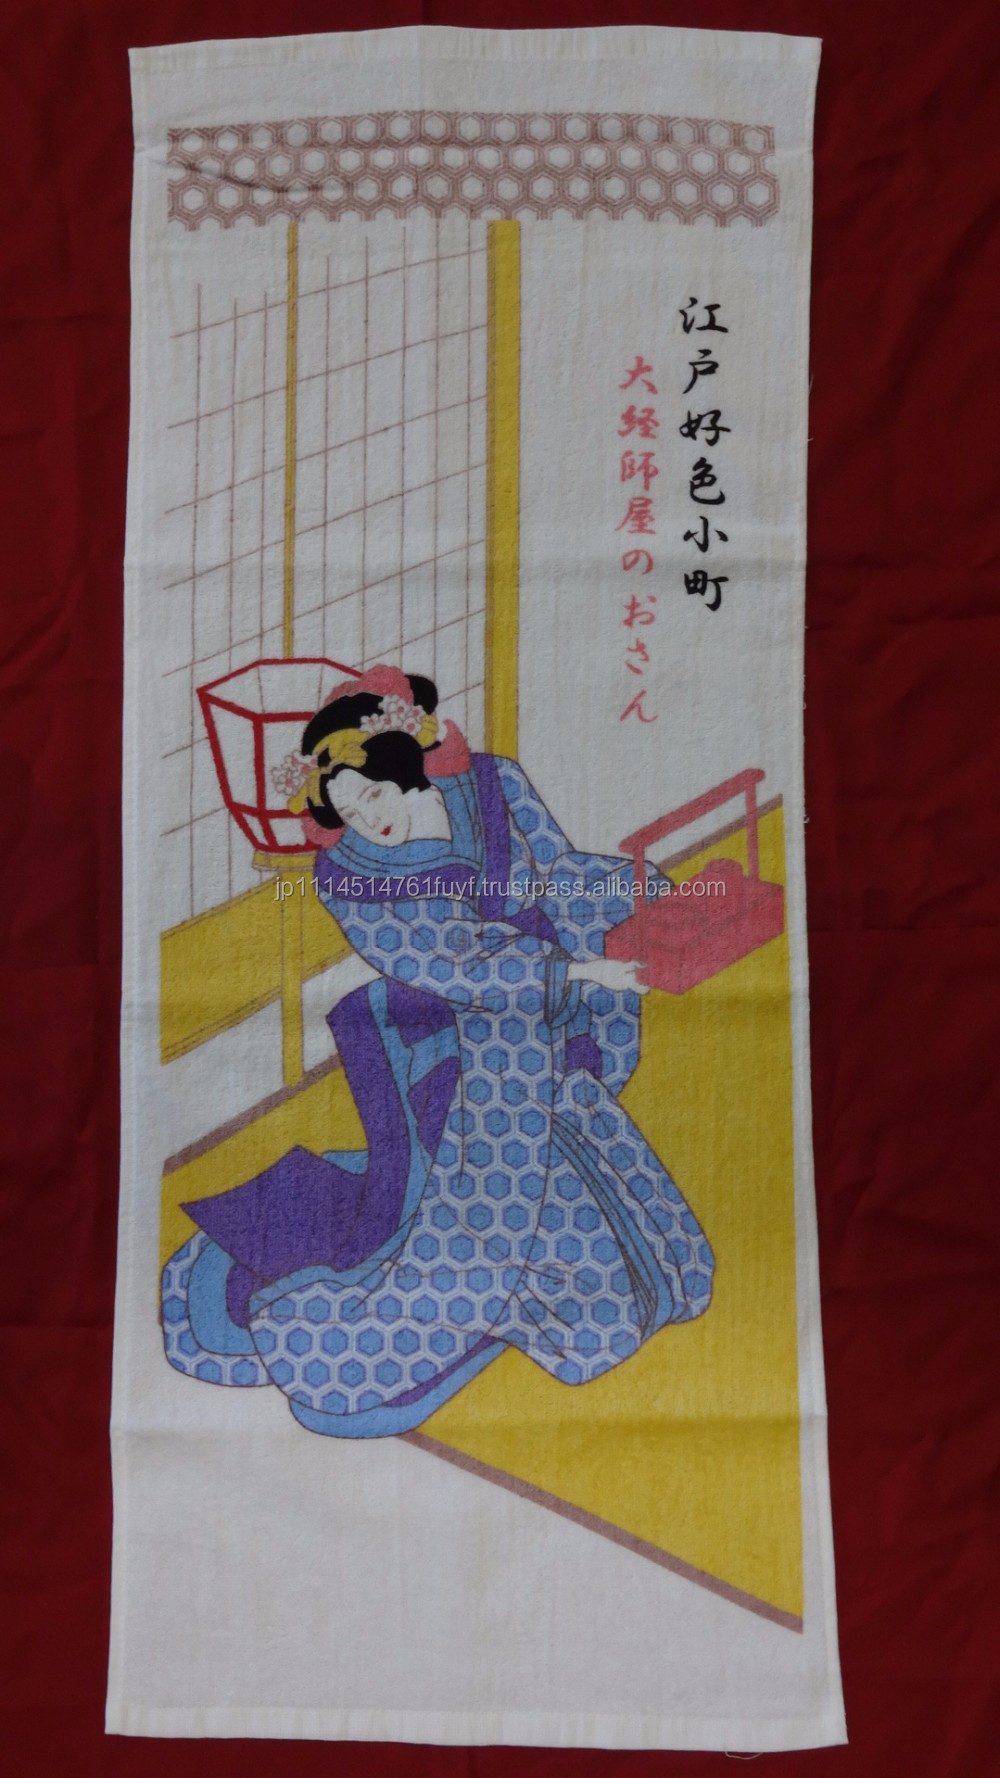 Color game japanese - Pretty And Classic Japanese Girl Game Ukiyo E Magic Towel With Color Changes Made In